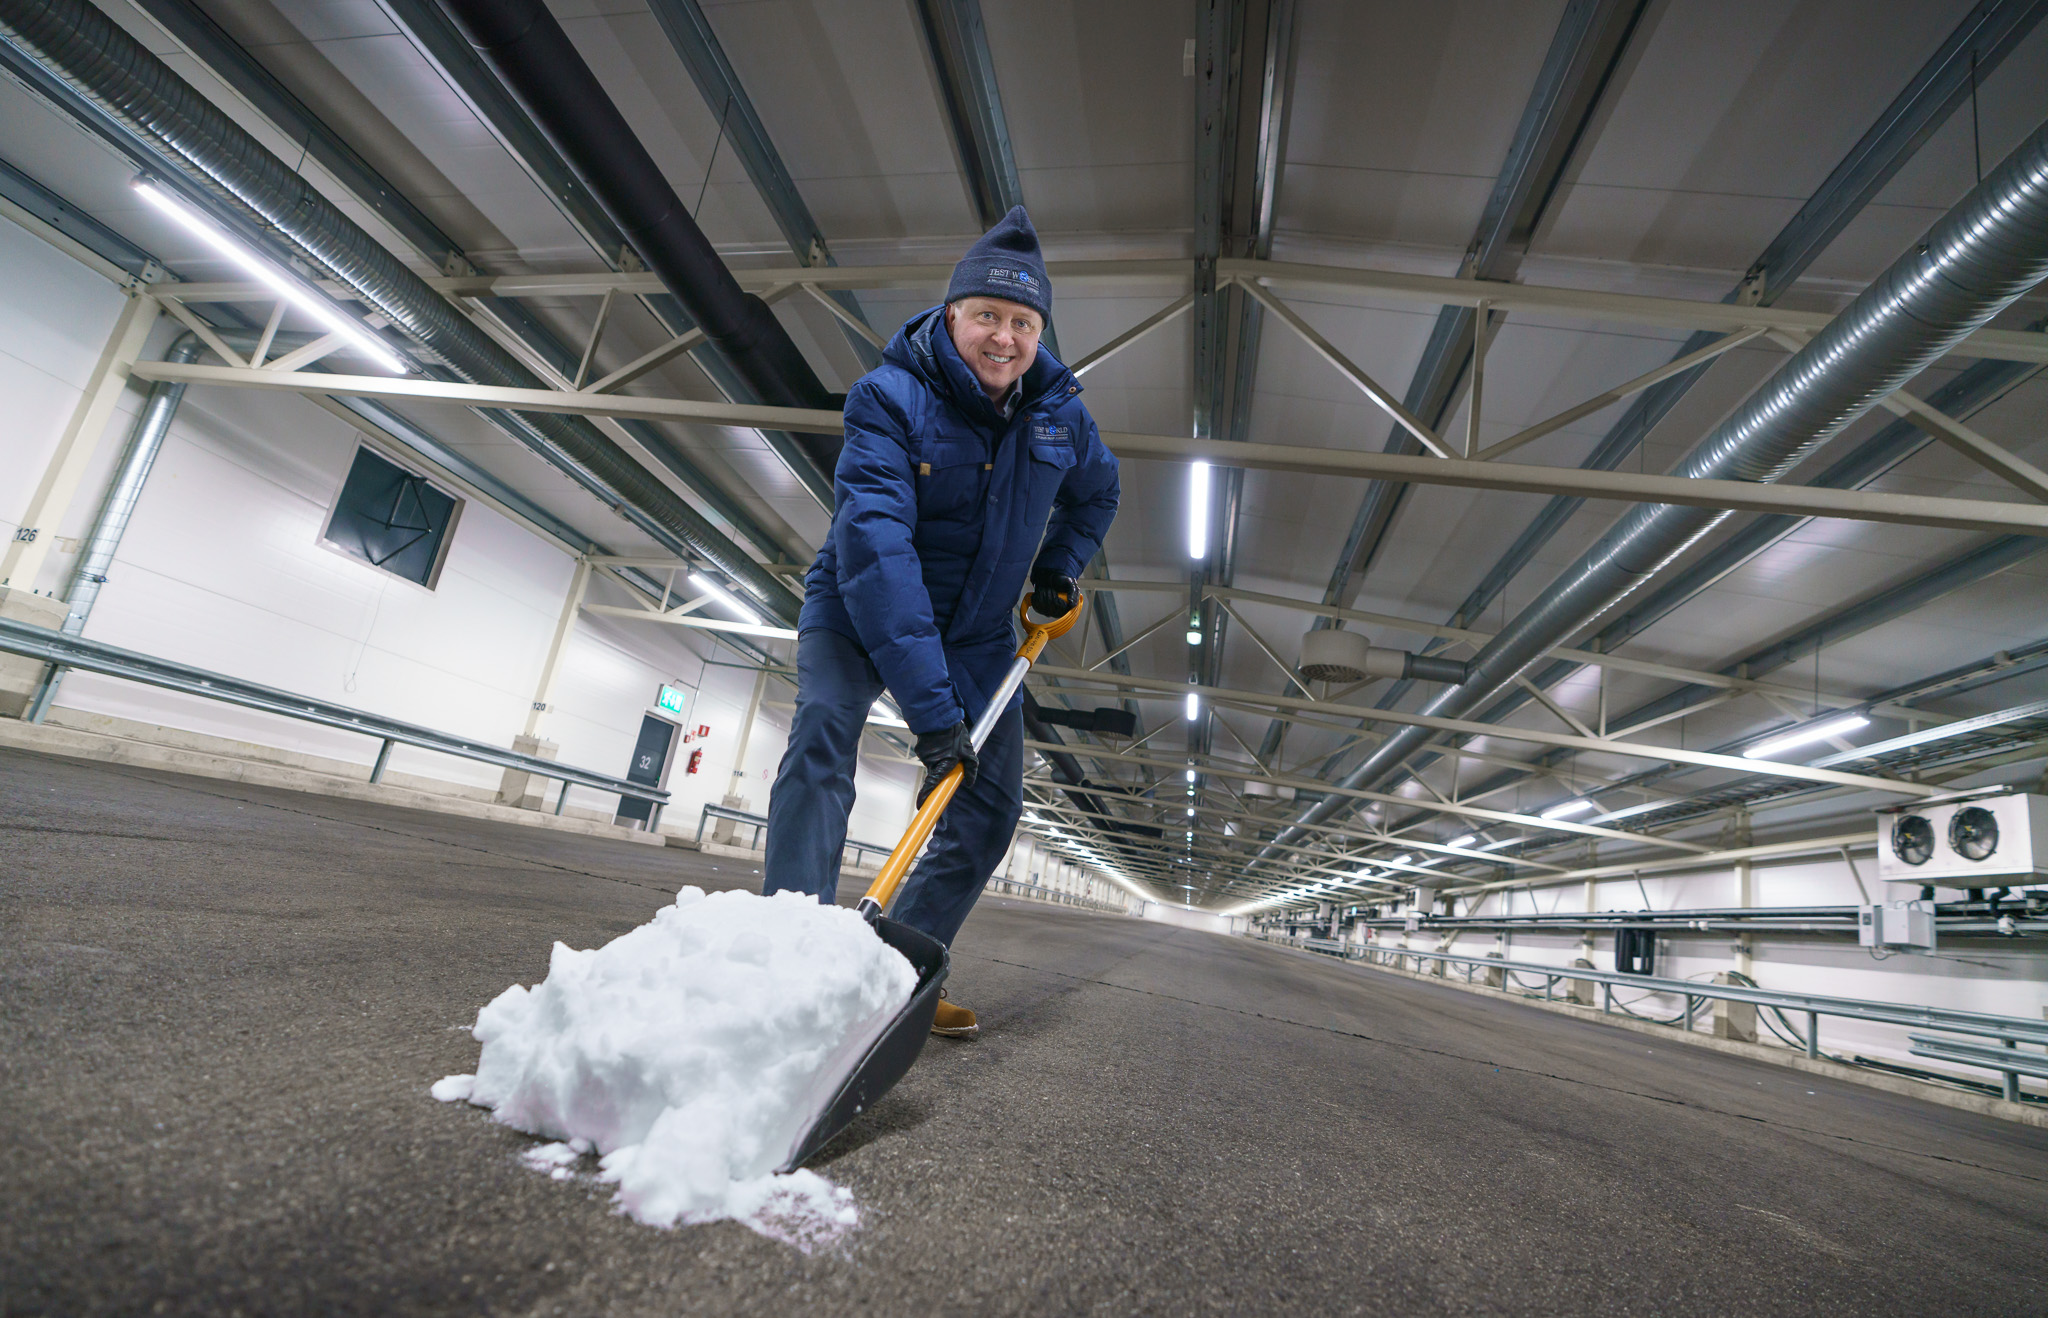 Preparations for indoor vehicle snow testing facility